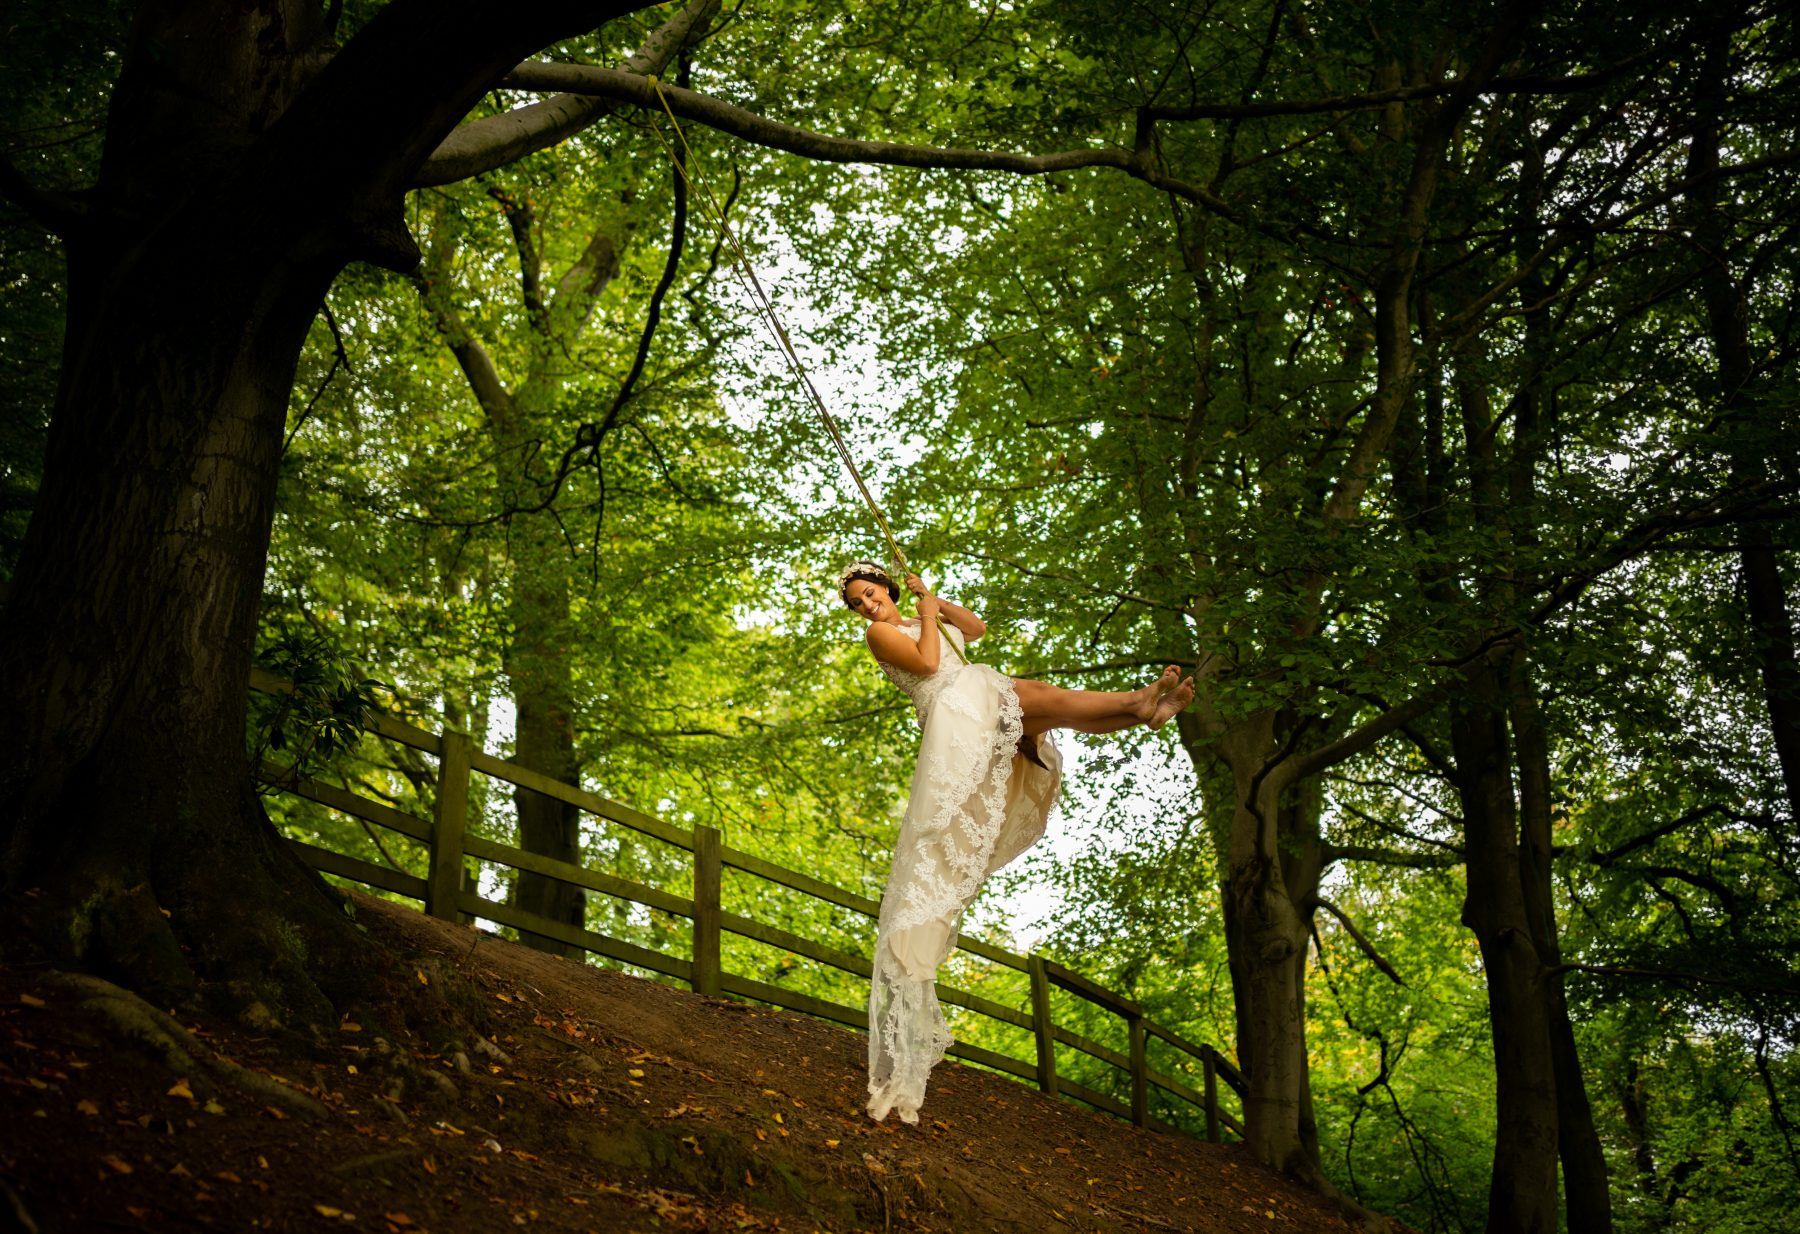 A bride swings on a rope swing during a photo shoot in Woodbank Park in Stockport